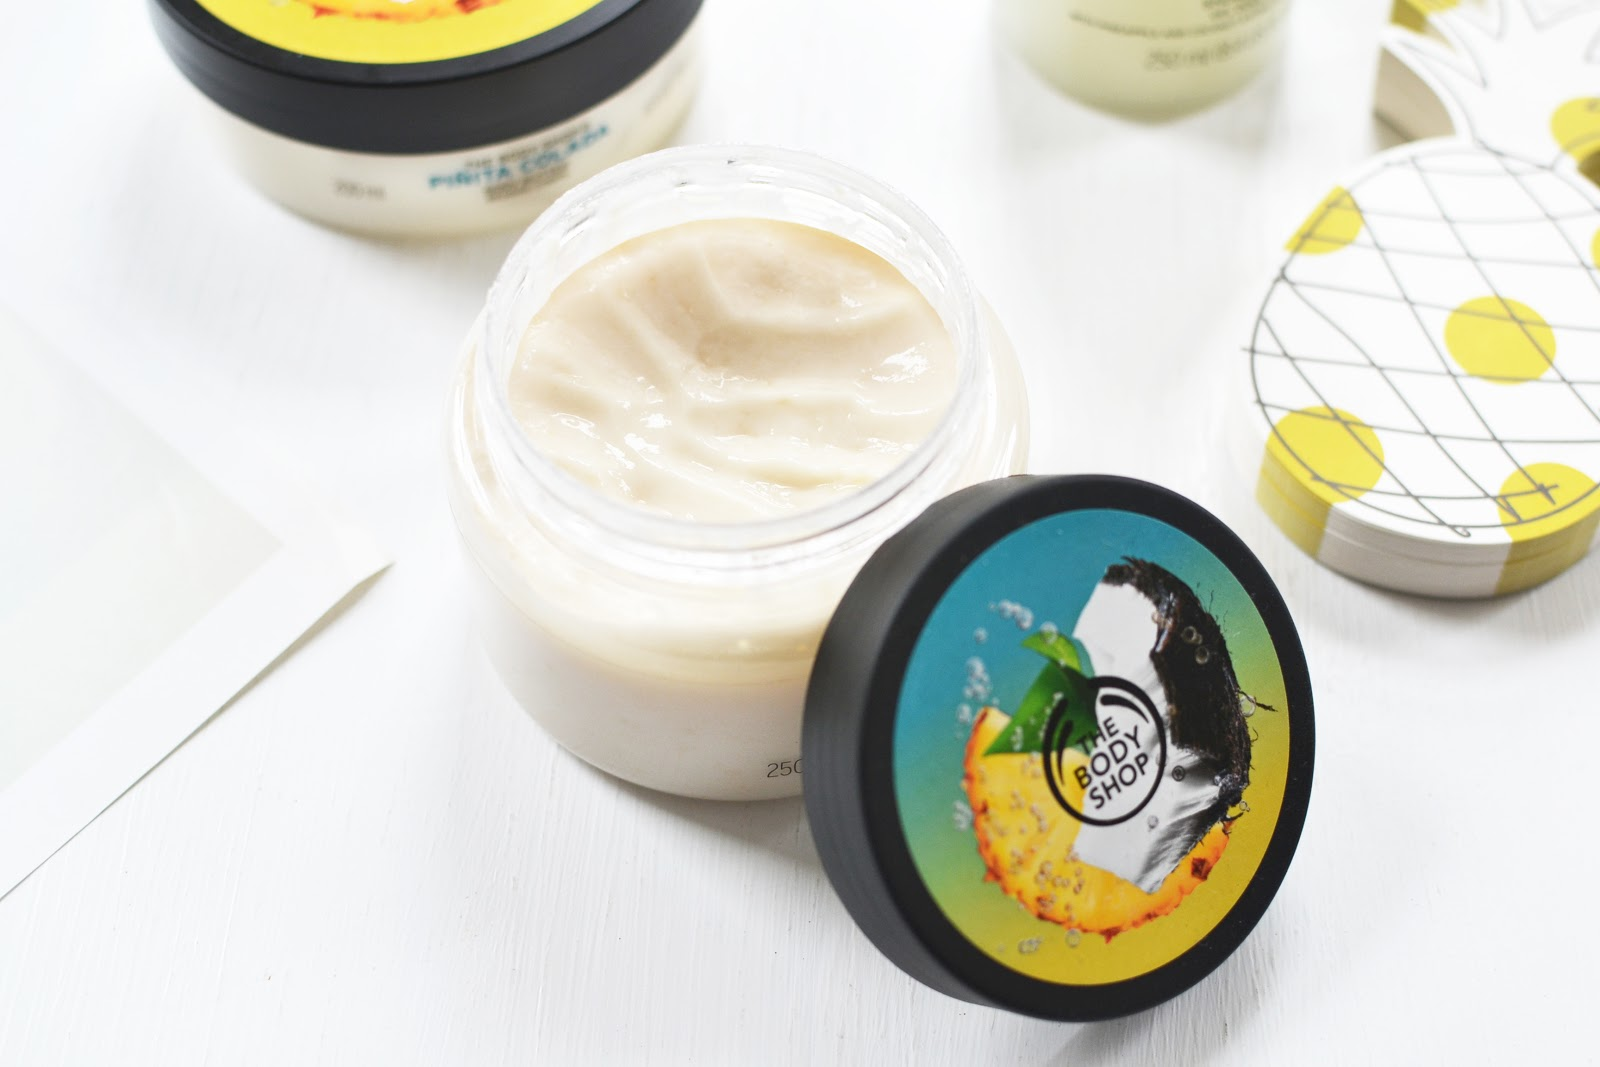 Pinita Colada Collection from The Body Shop